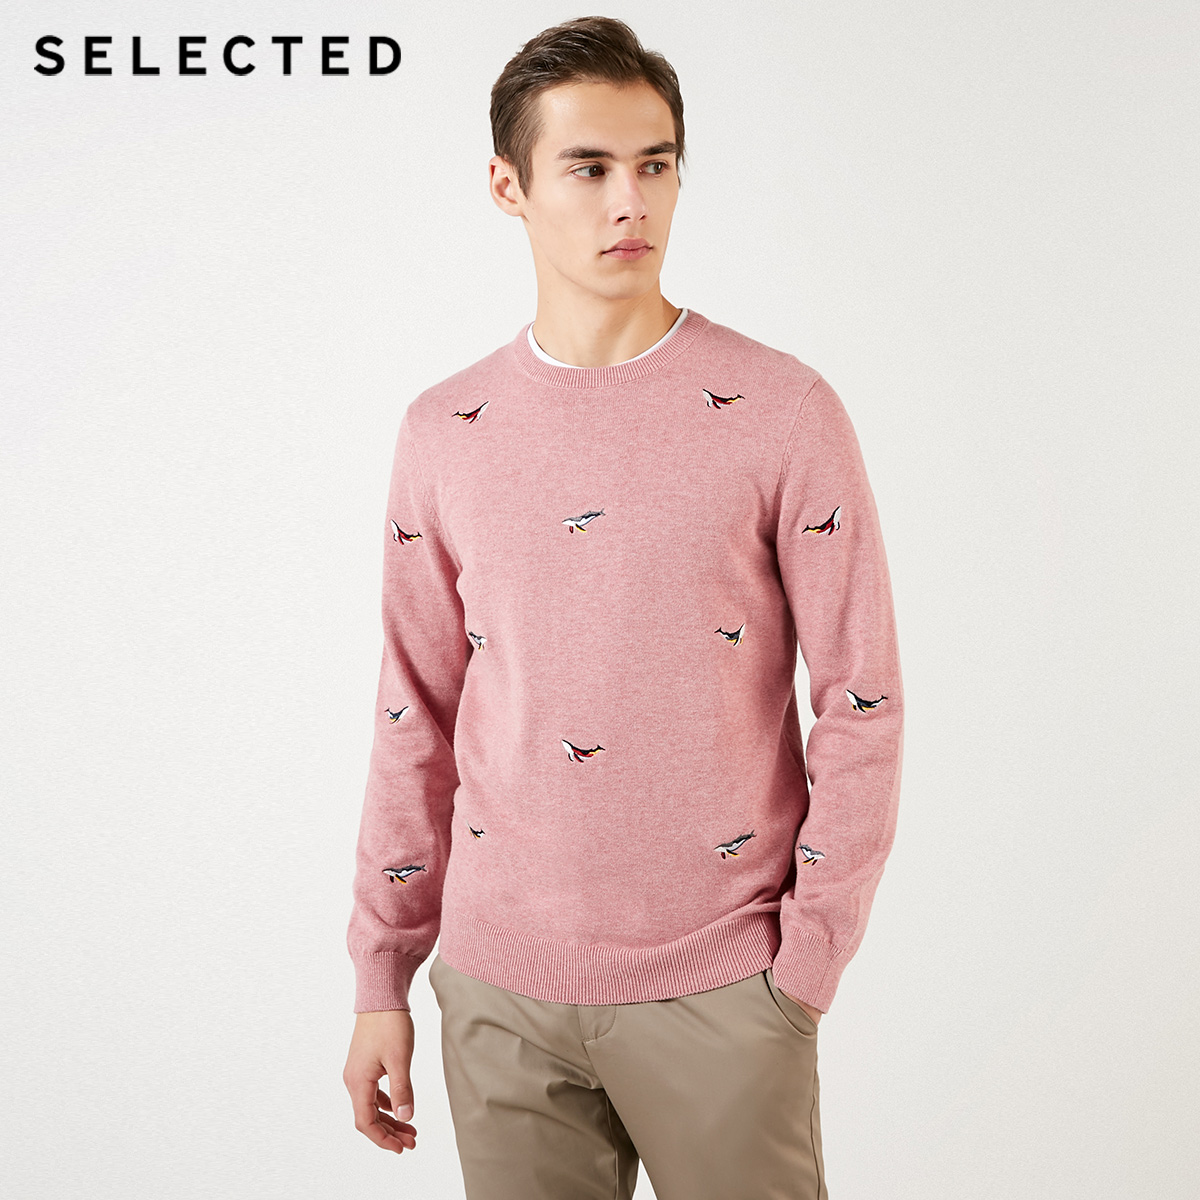 Image 3 - SELECTED Mens 100% Cotton Animal Embroidery Pullovers Sweater New Casual Knit Clothes C  419124539Pullovers